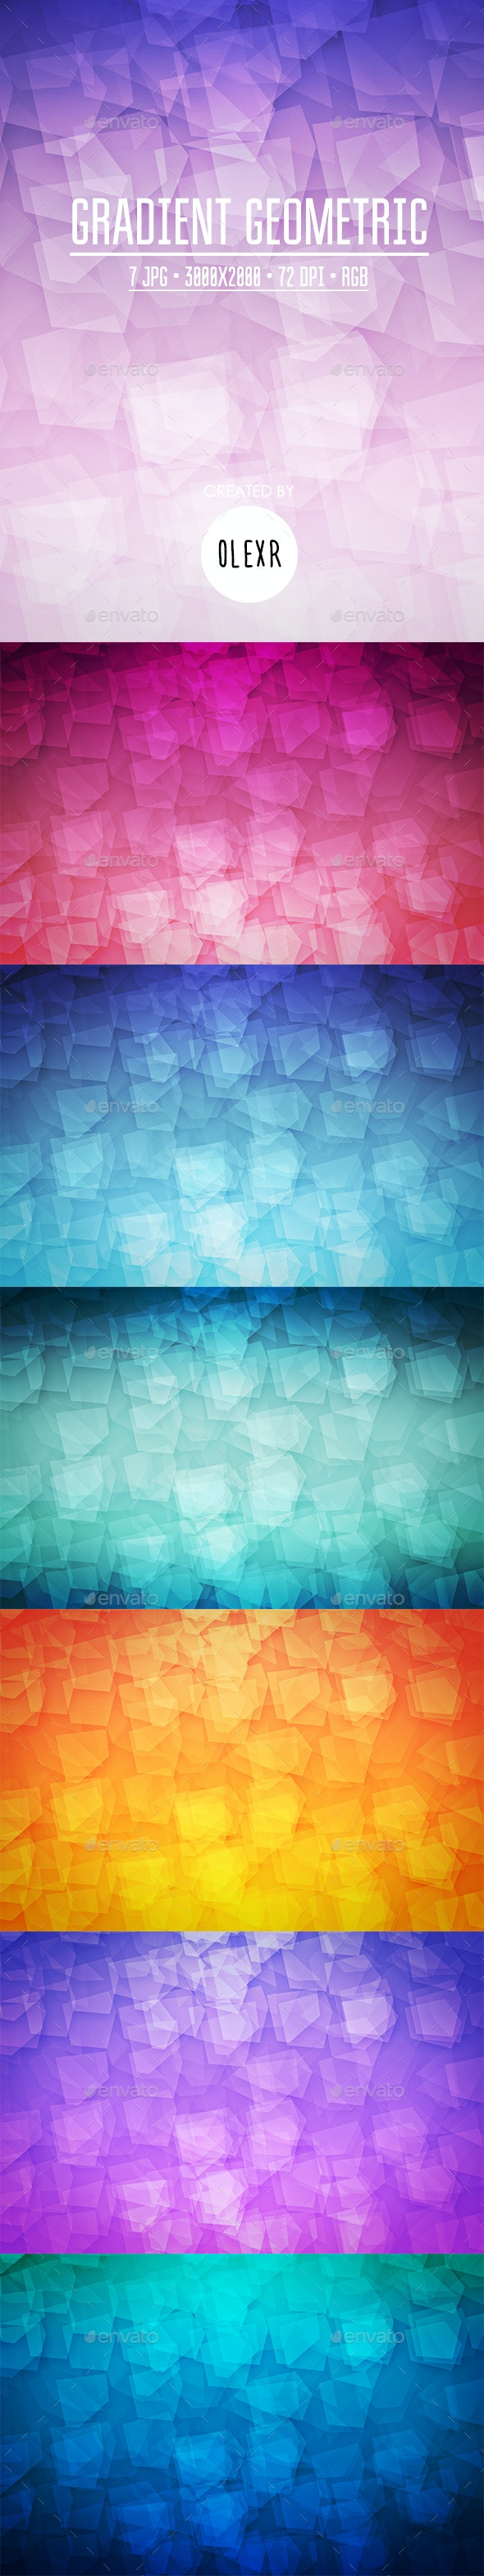 Gradient Geometric Backgrounds - Abstract Backgrounds